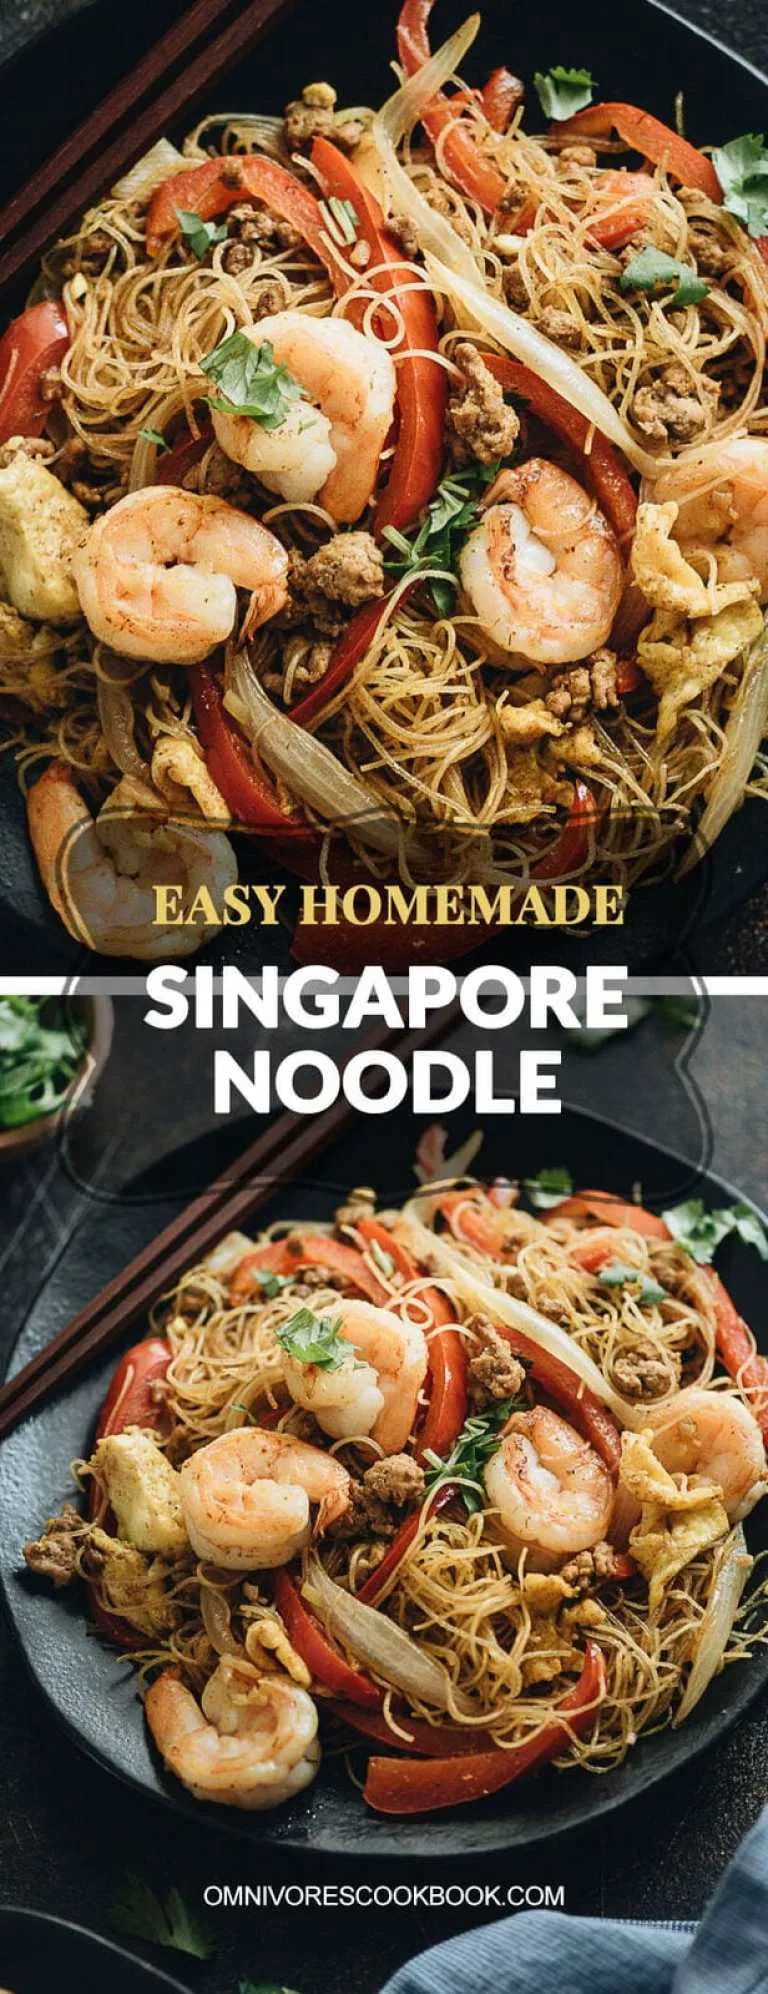 pinshawn daniels on food in 2020  noodle recipes easy